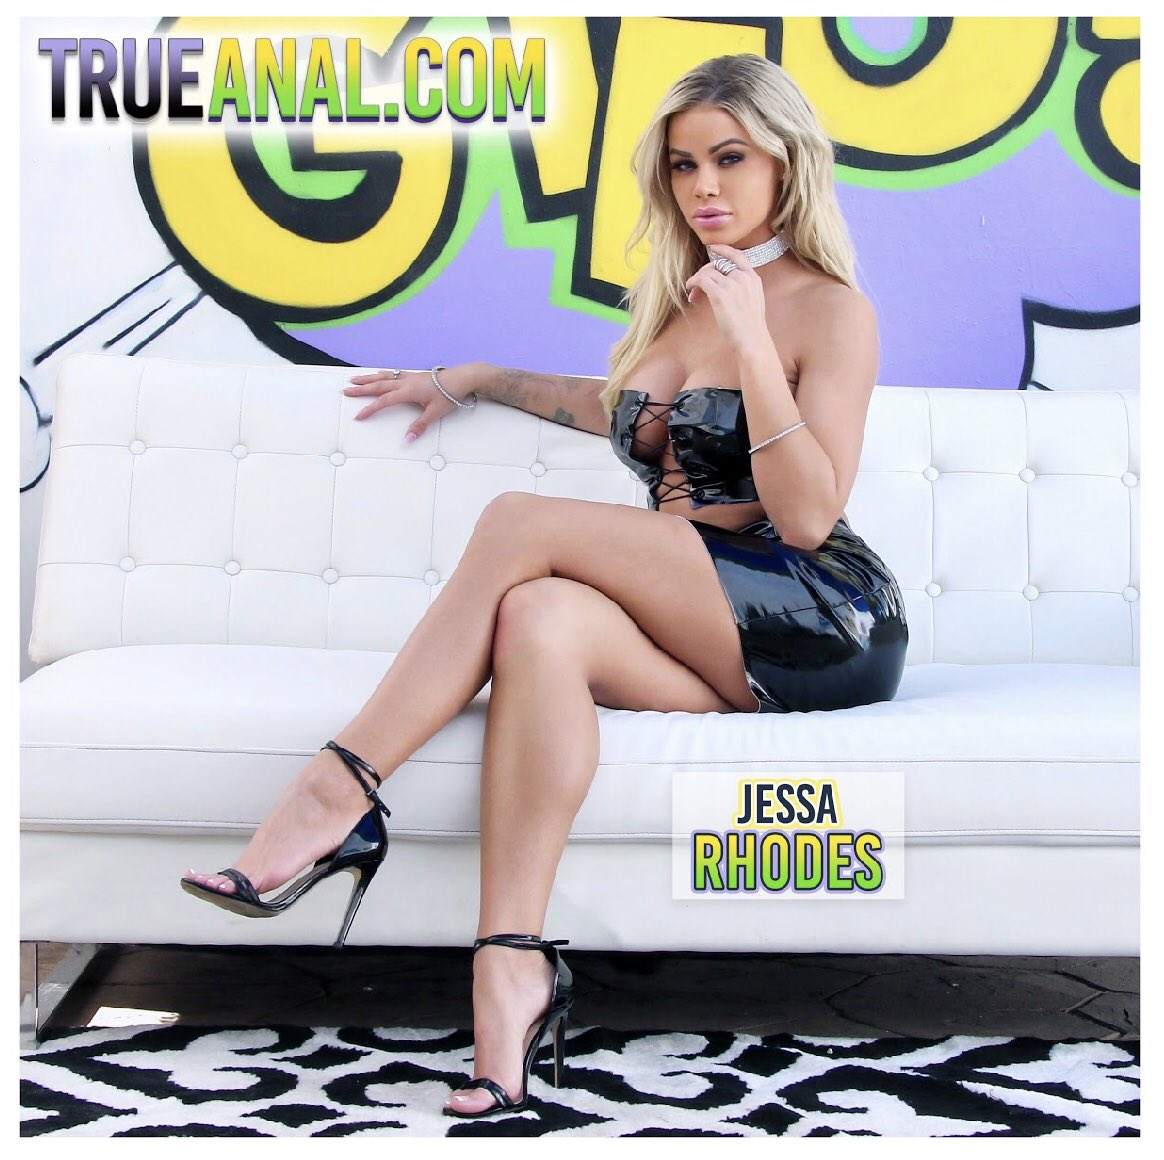 Check out my newest #anal scene on NGHil0KjmT 😈💦 kPWvRDMOpT